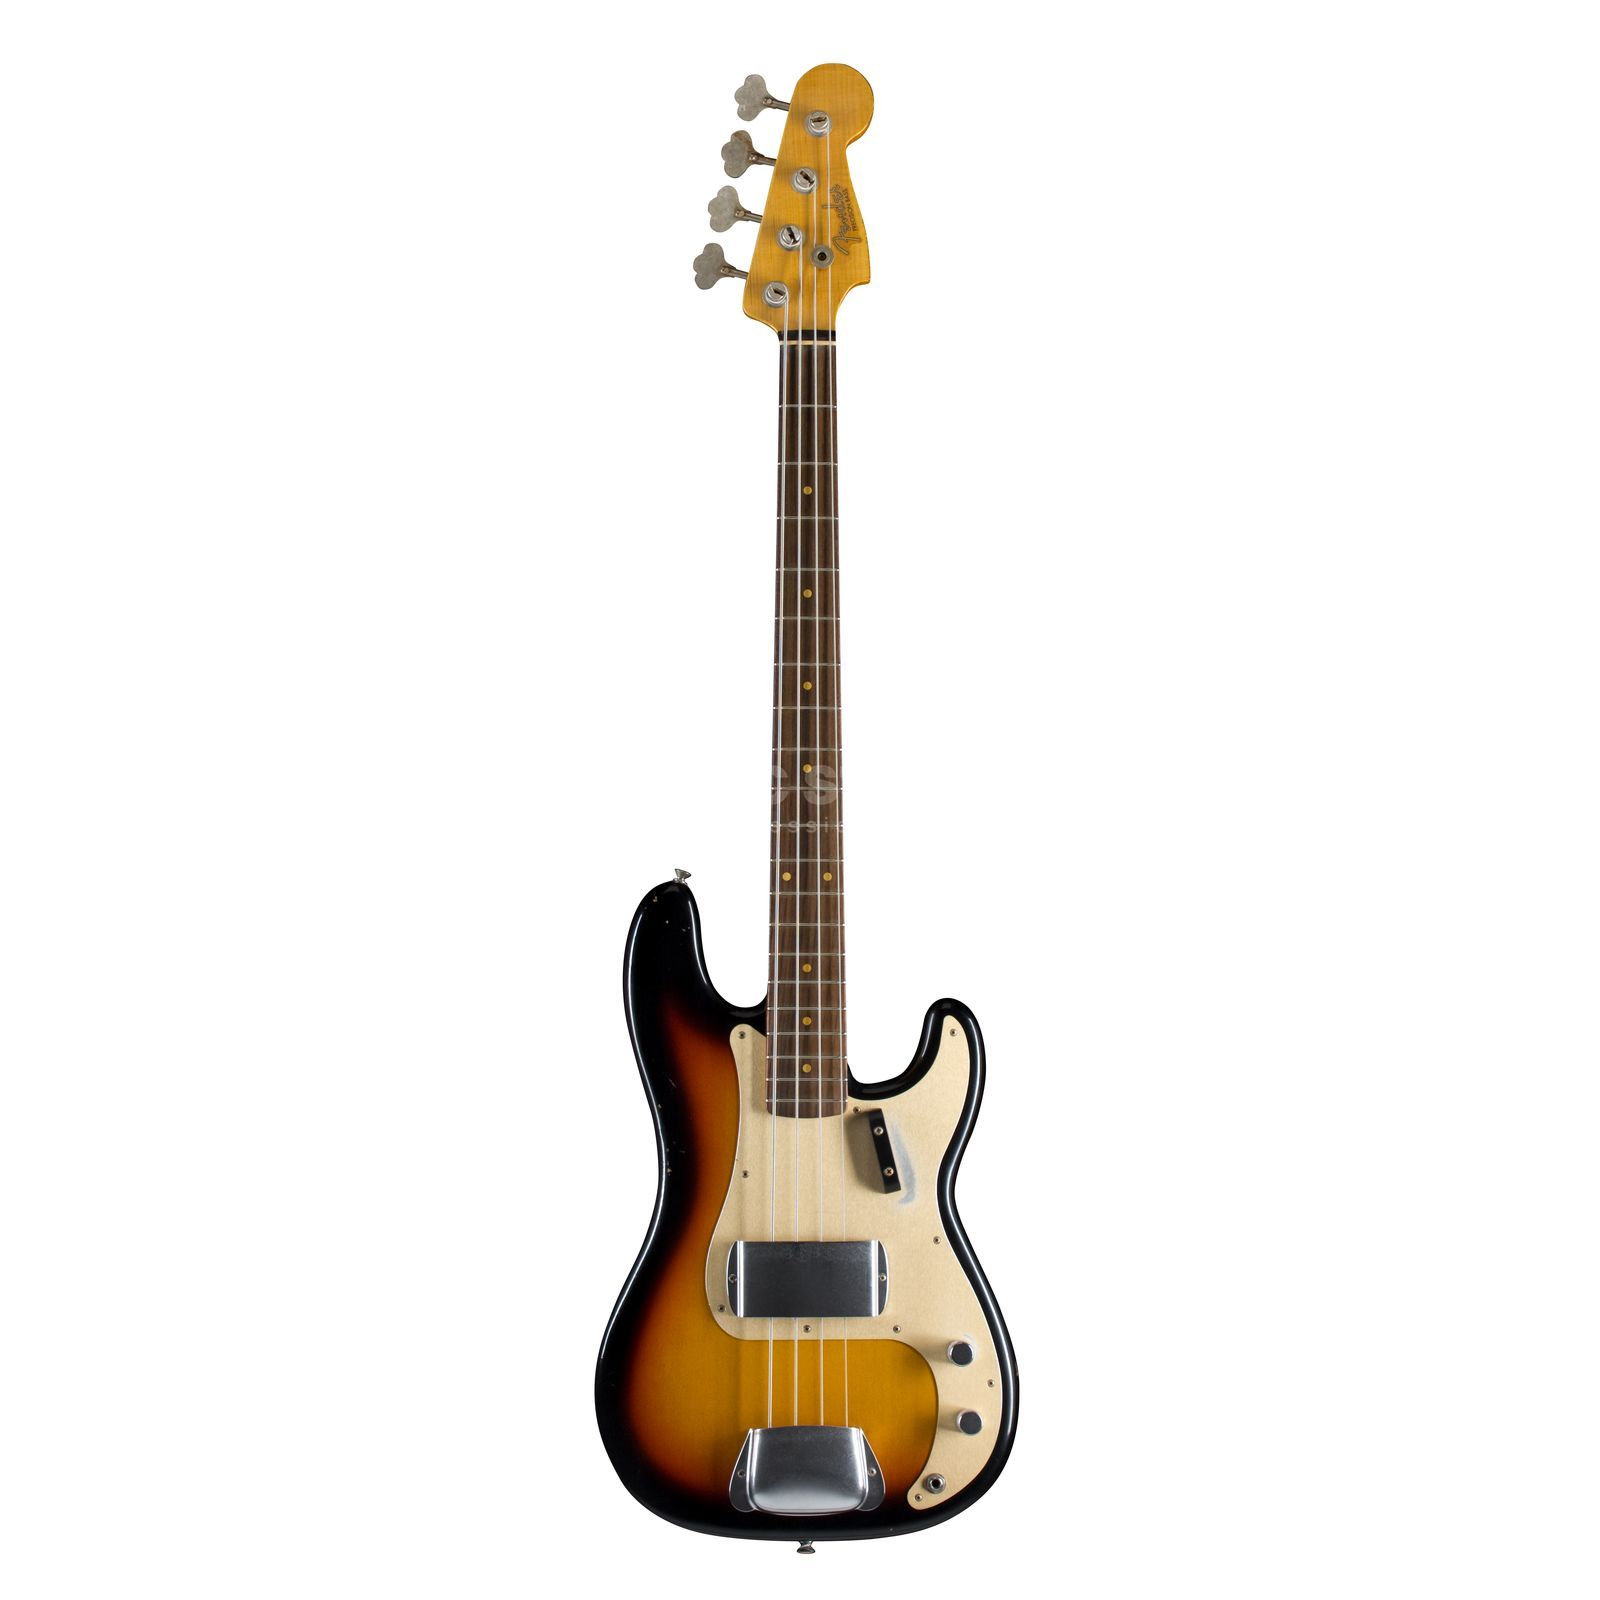 Fender CS '59 P-Bass Journeyman Relic Faded 3-Tone-SB, S#:R79308 Zdjęcie produktu